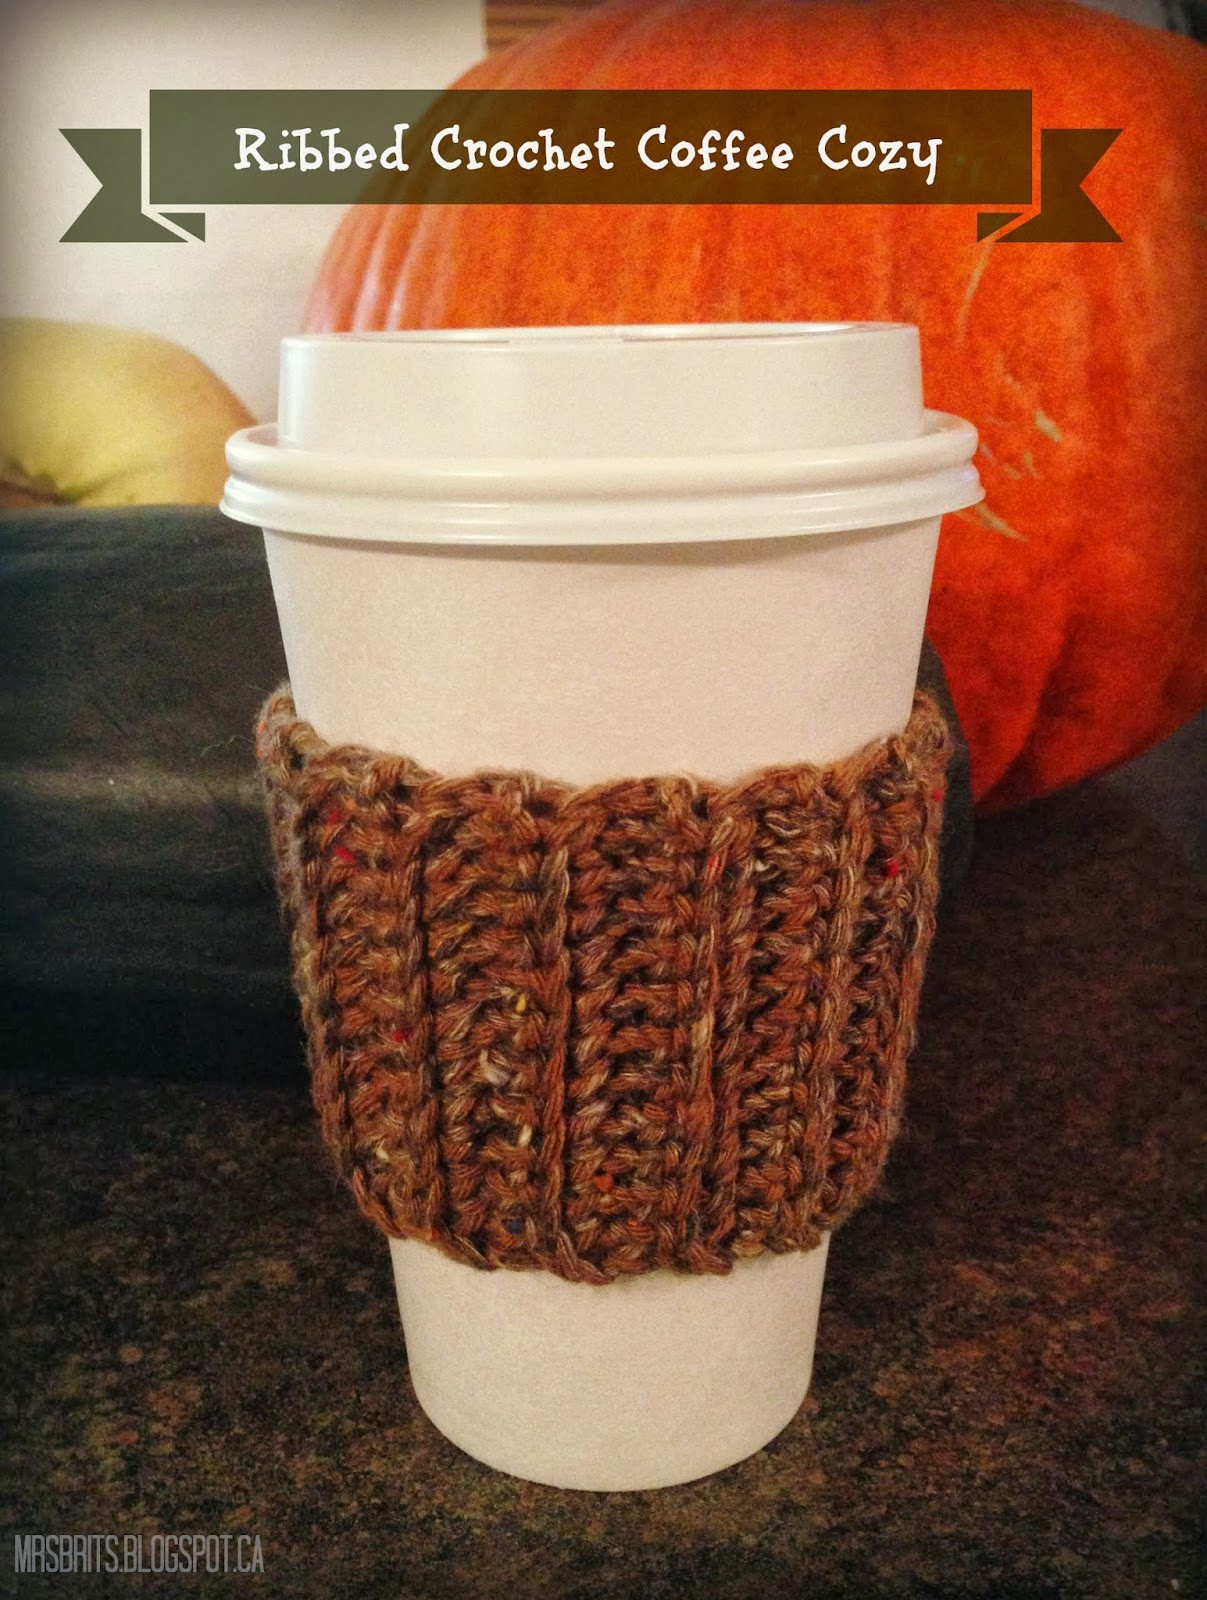 Crochet Coffee Cup Cozy Unique Mrsbrits Ribbed Coffee Cozy Crochet Pattern Of Crochet Coffee Cup Cozy Elegant Wooftastic Puppy Crochet Coffee Cozy